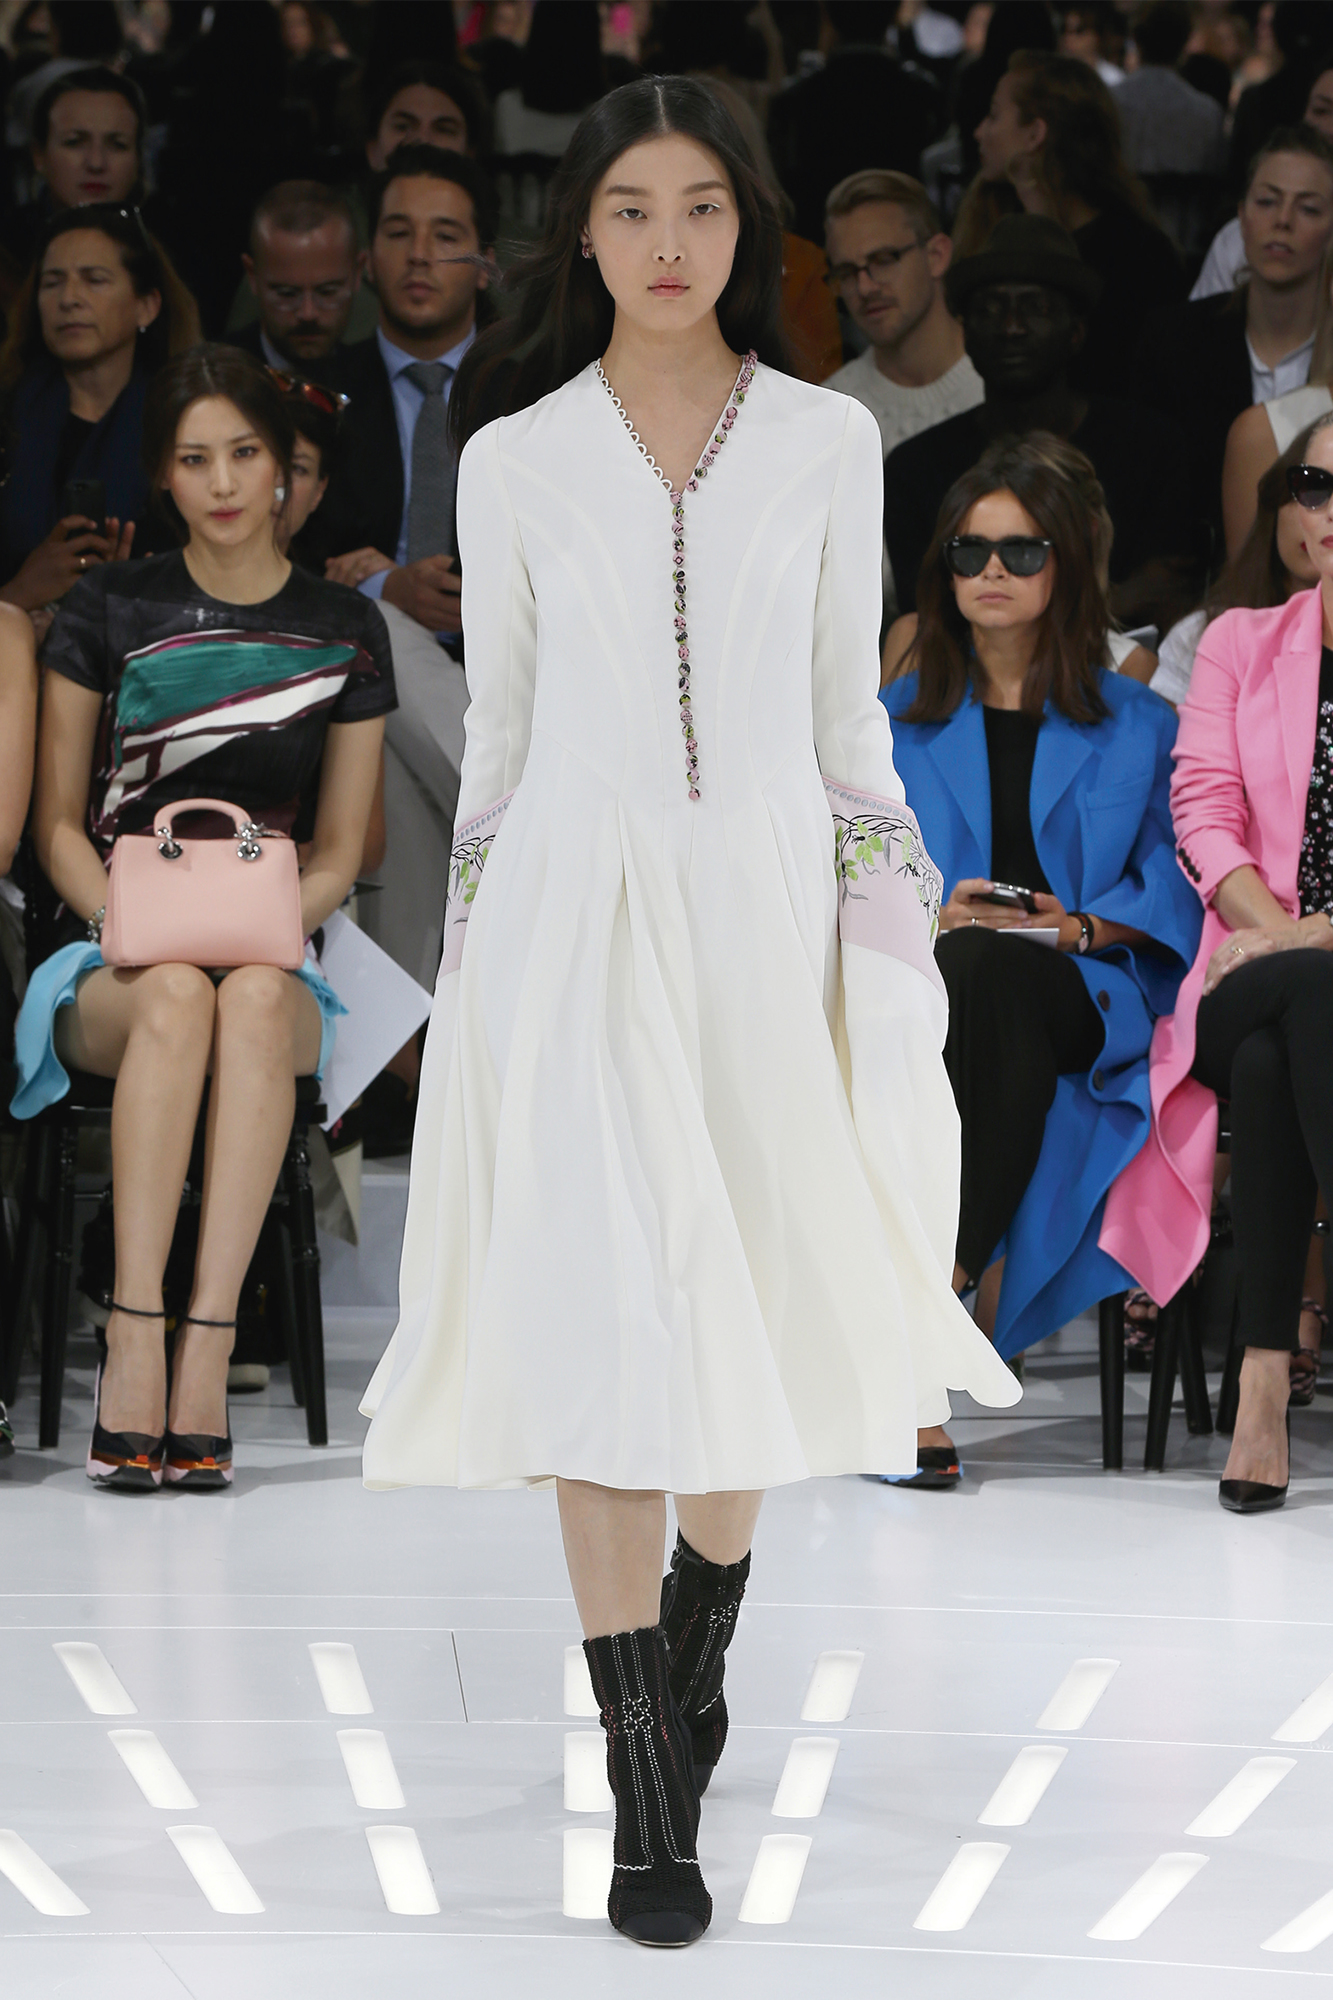 New Western Fashion Christian Dior Ready To Wear Dresses Spring Summer Collection 2015 (1)